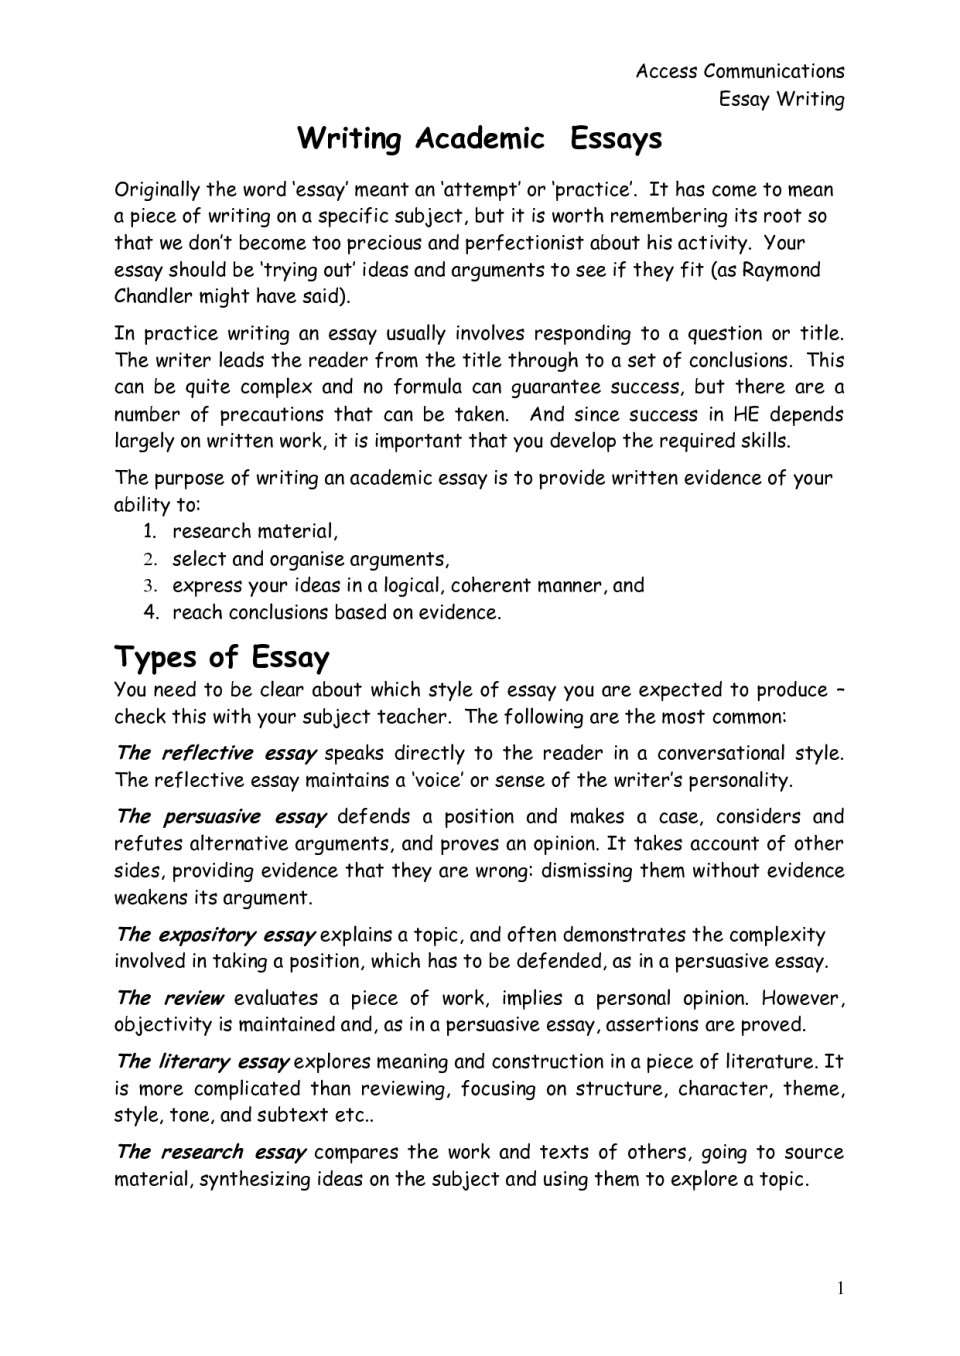 019 Write My Essay For Me Example Surprising Free College Online 960